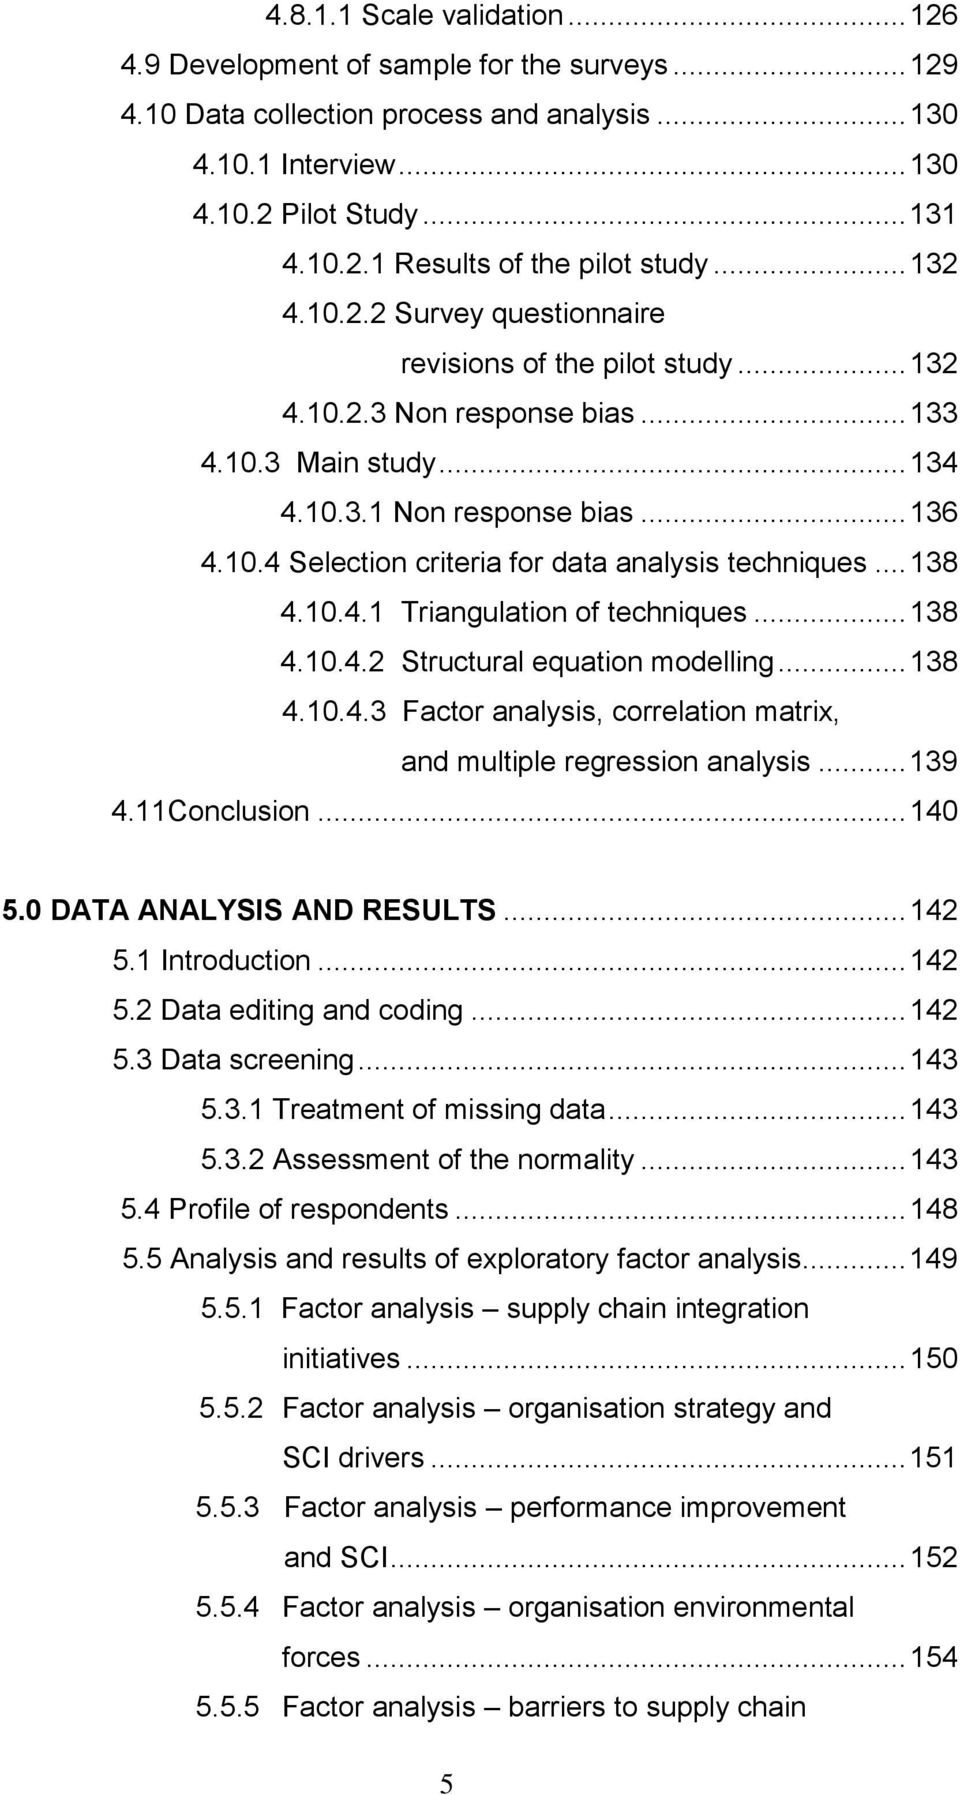 .. 138 4.10.4.1 Triangulation of techniques... 138 4.10.4.2 Structural equation modelling... 138 4.10.4.3 Factor analysis, correlation matrix, and multiple regression analysis... 139 4.11Conclusion.